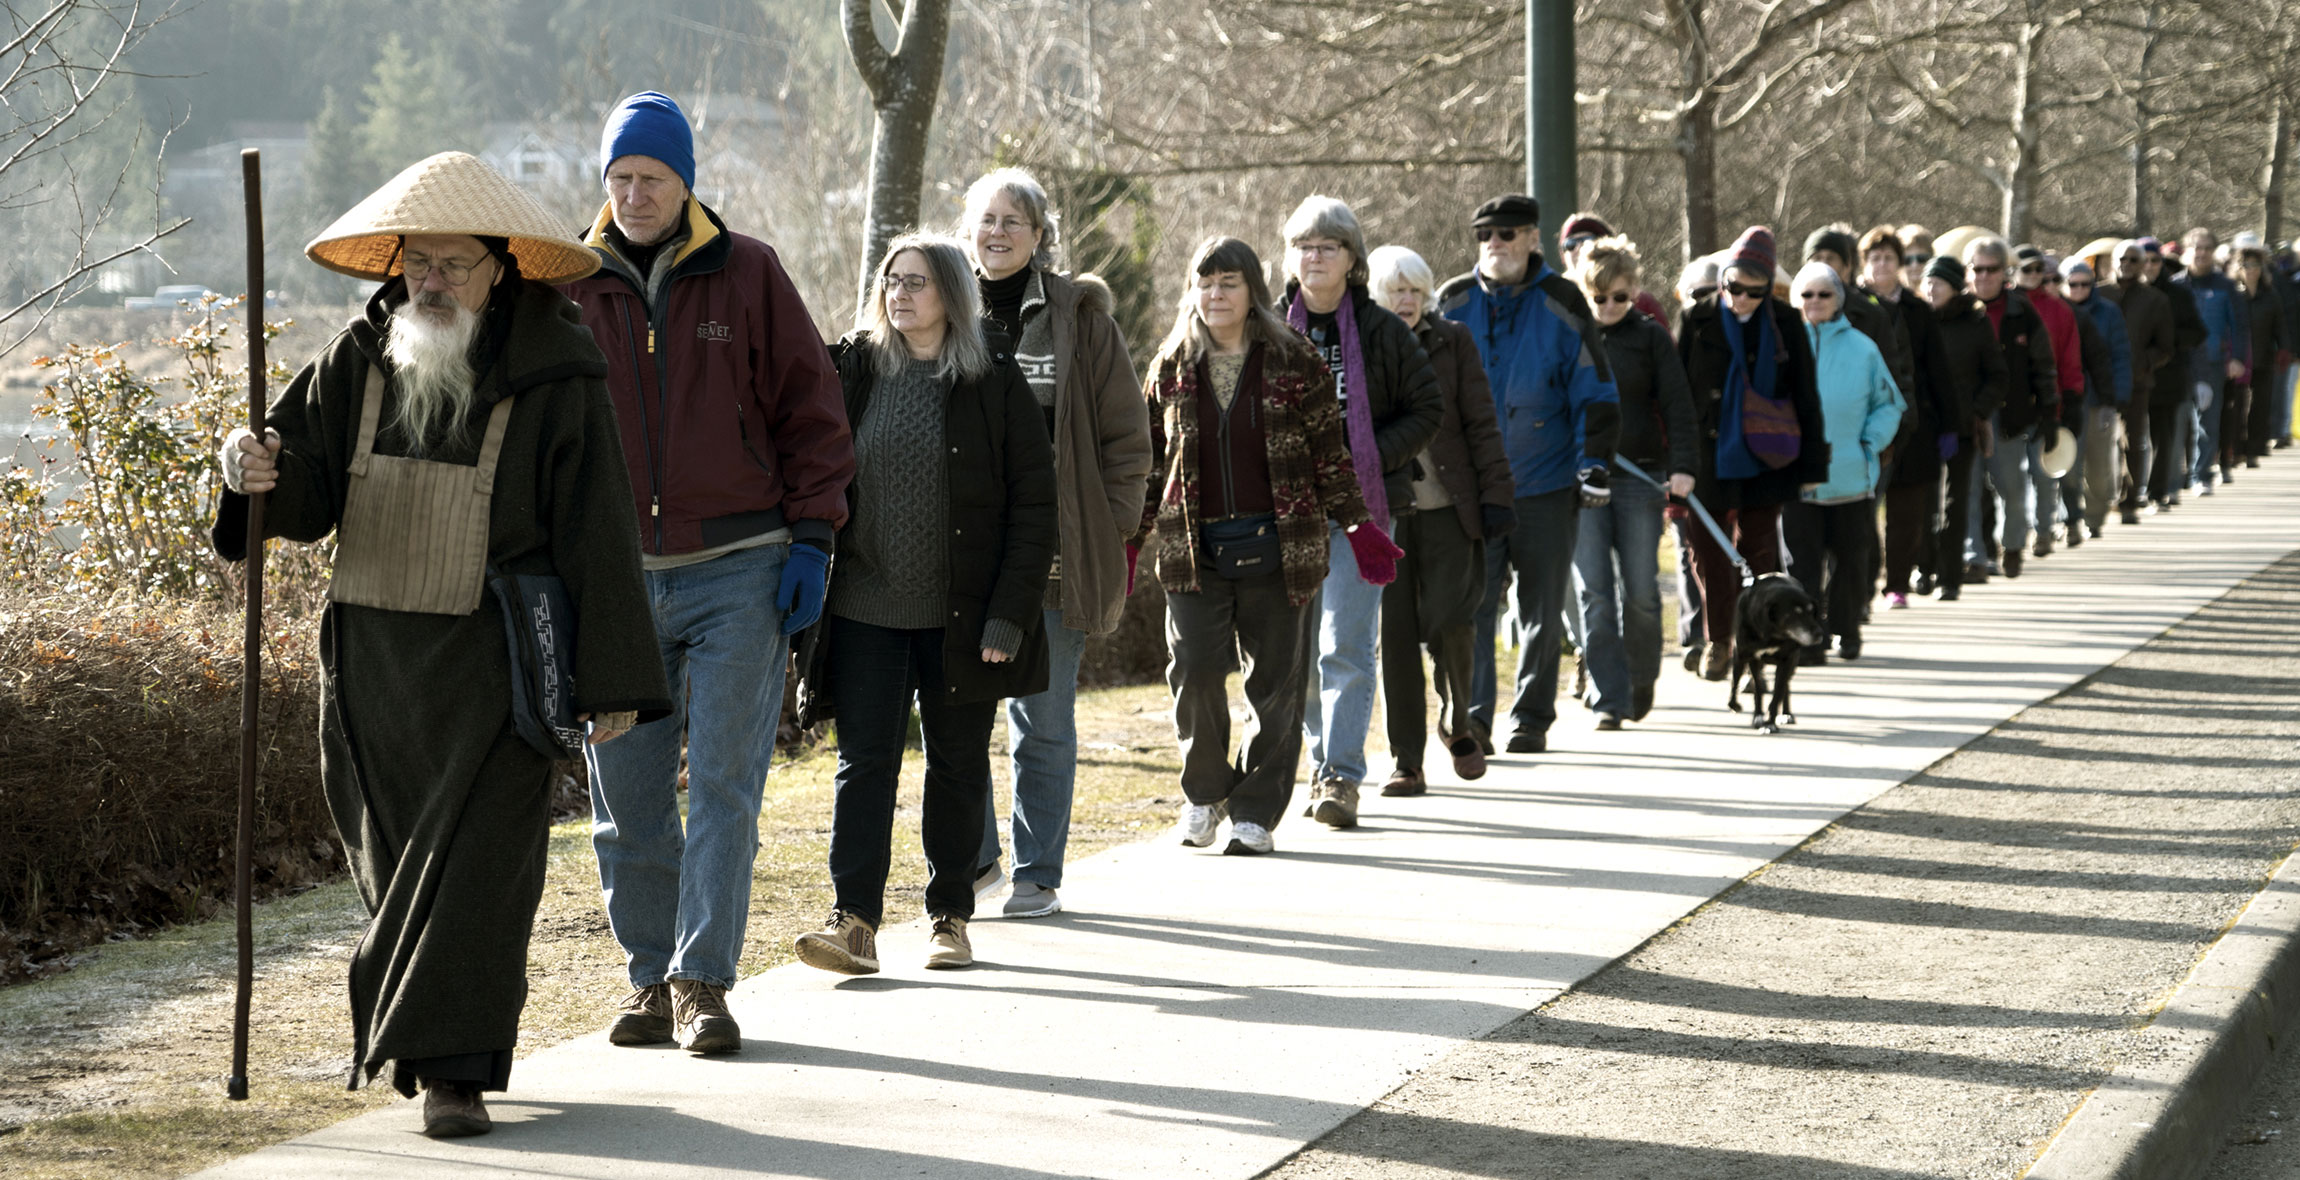 Nearly 100 people silently walked together in the name of peace, near Washington's state's capitol building, on a crisp cold Jan. 15. The walk, the 10th in a series, also honored the birthday of civil rights leader Martin Luther King Jr.